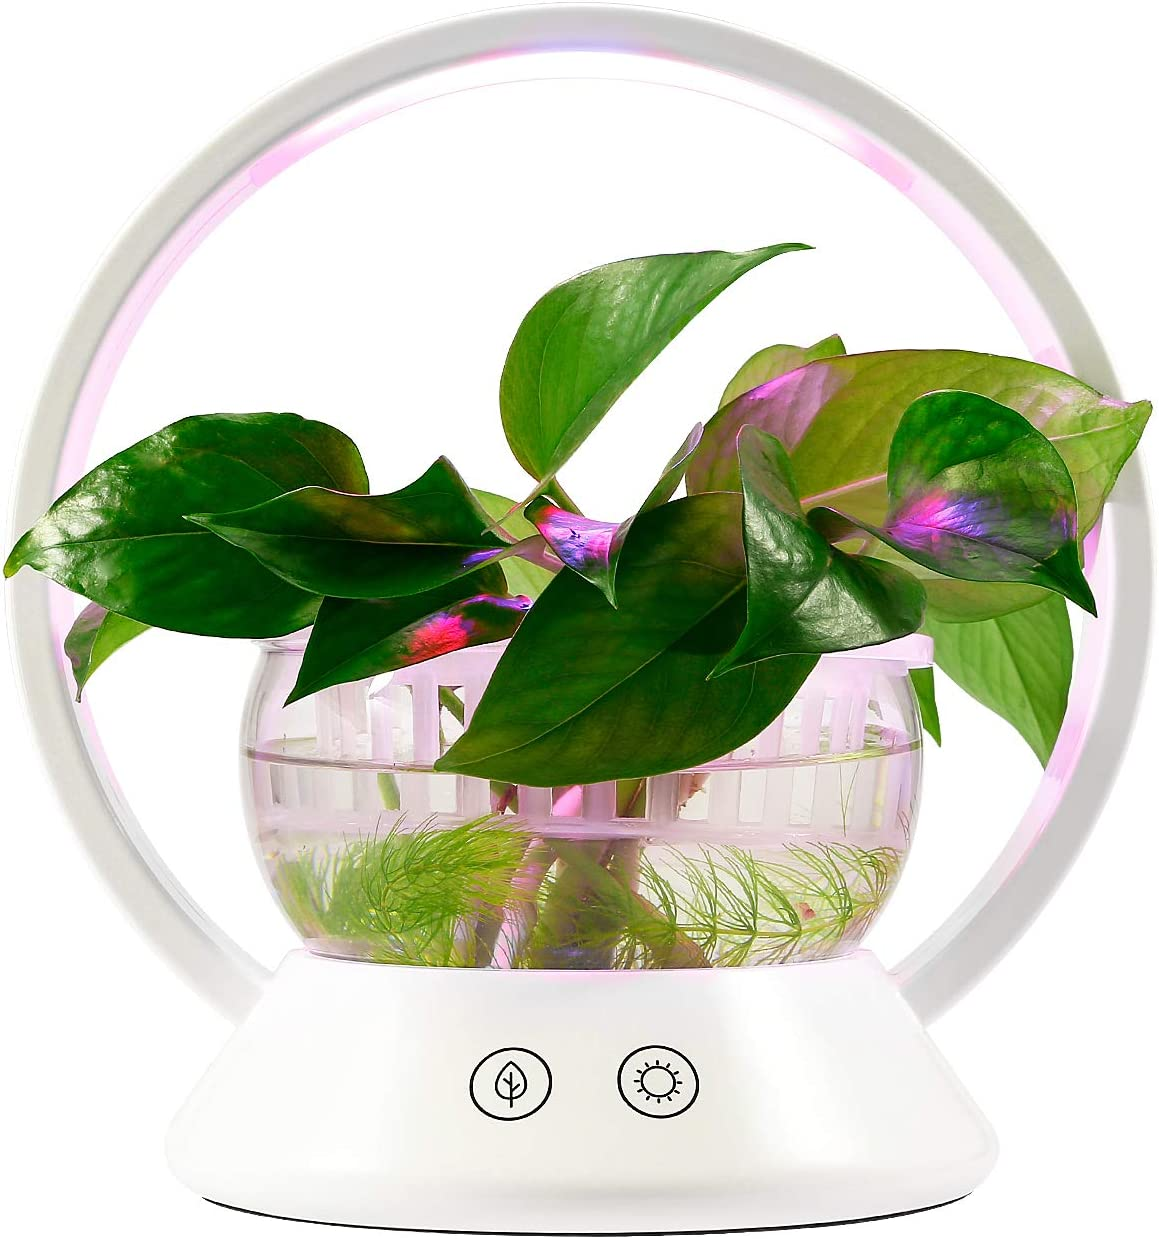 TORCHSTAR LED Indoor Garden Kit Plant Grow Light, Fish Tank Design & Portable 'O' Shape Basket, Sensitive Touch Control, for Bedroom, Kitchen, Office